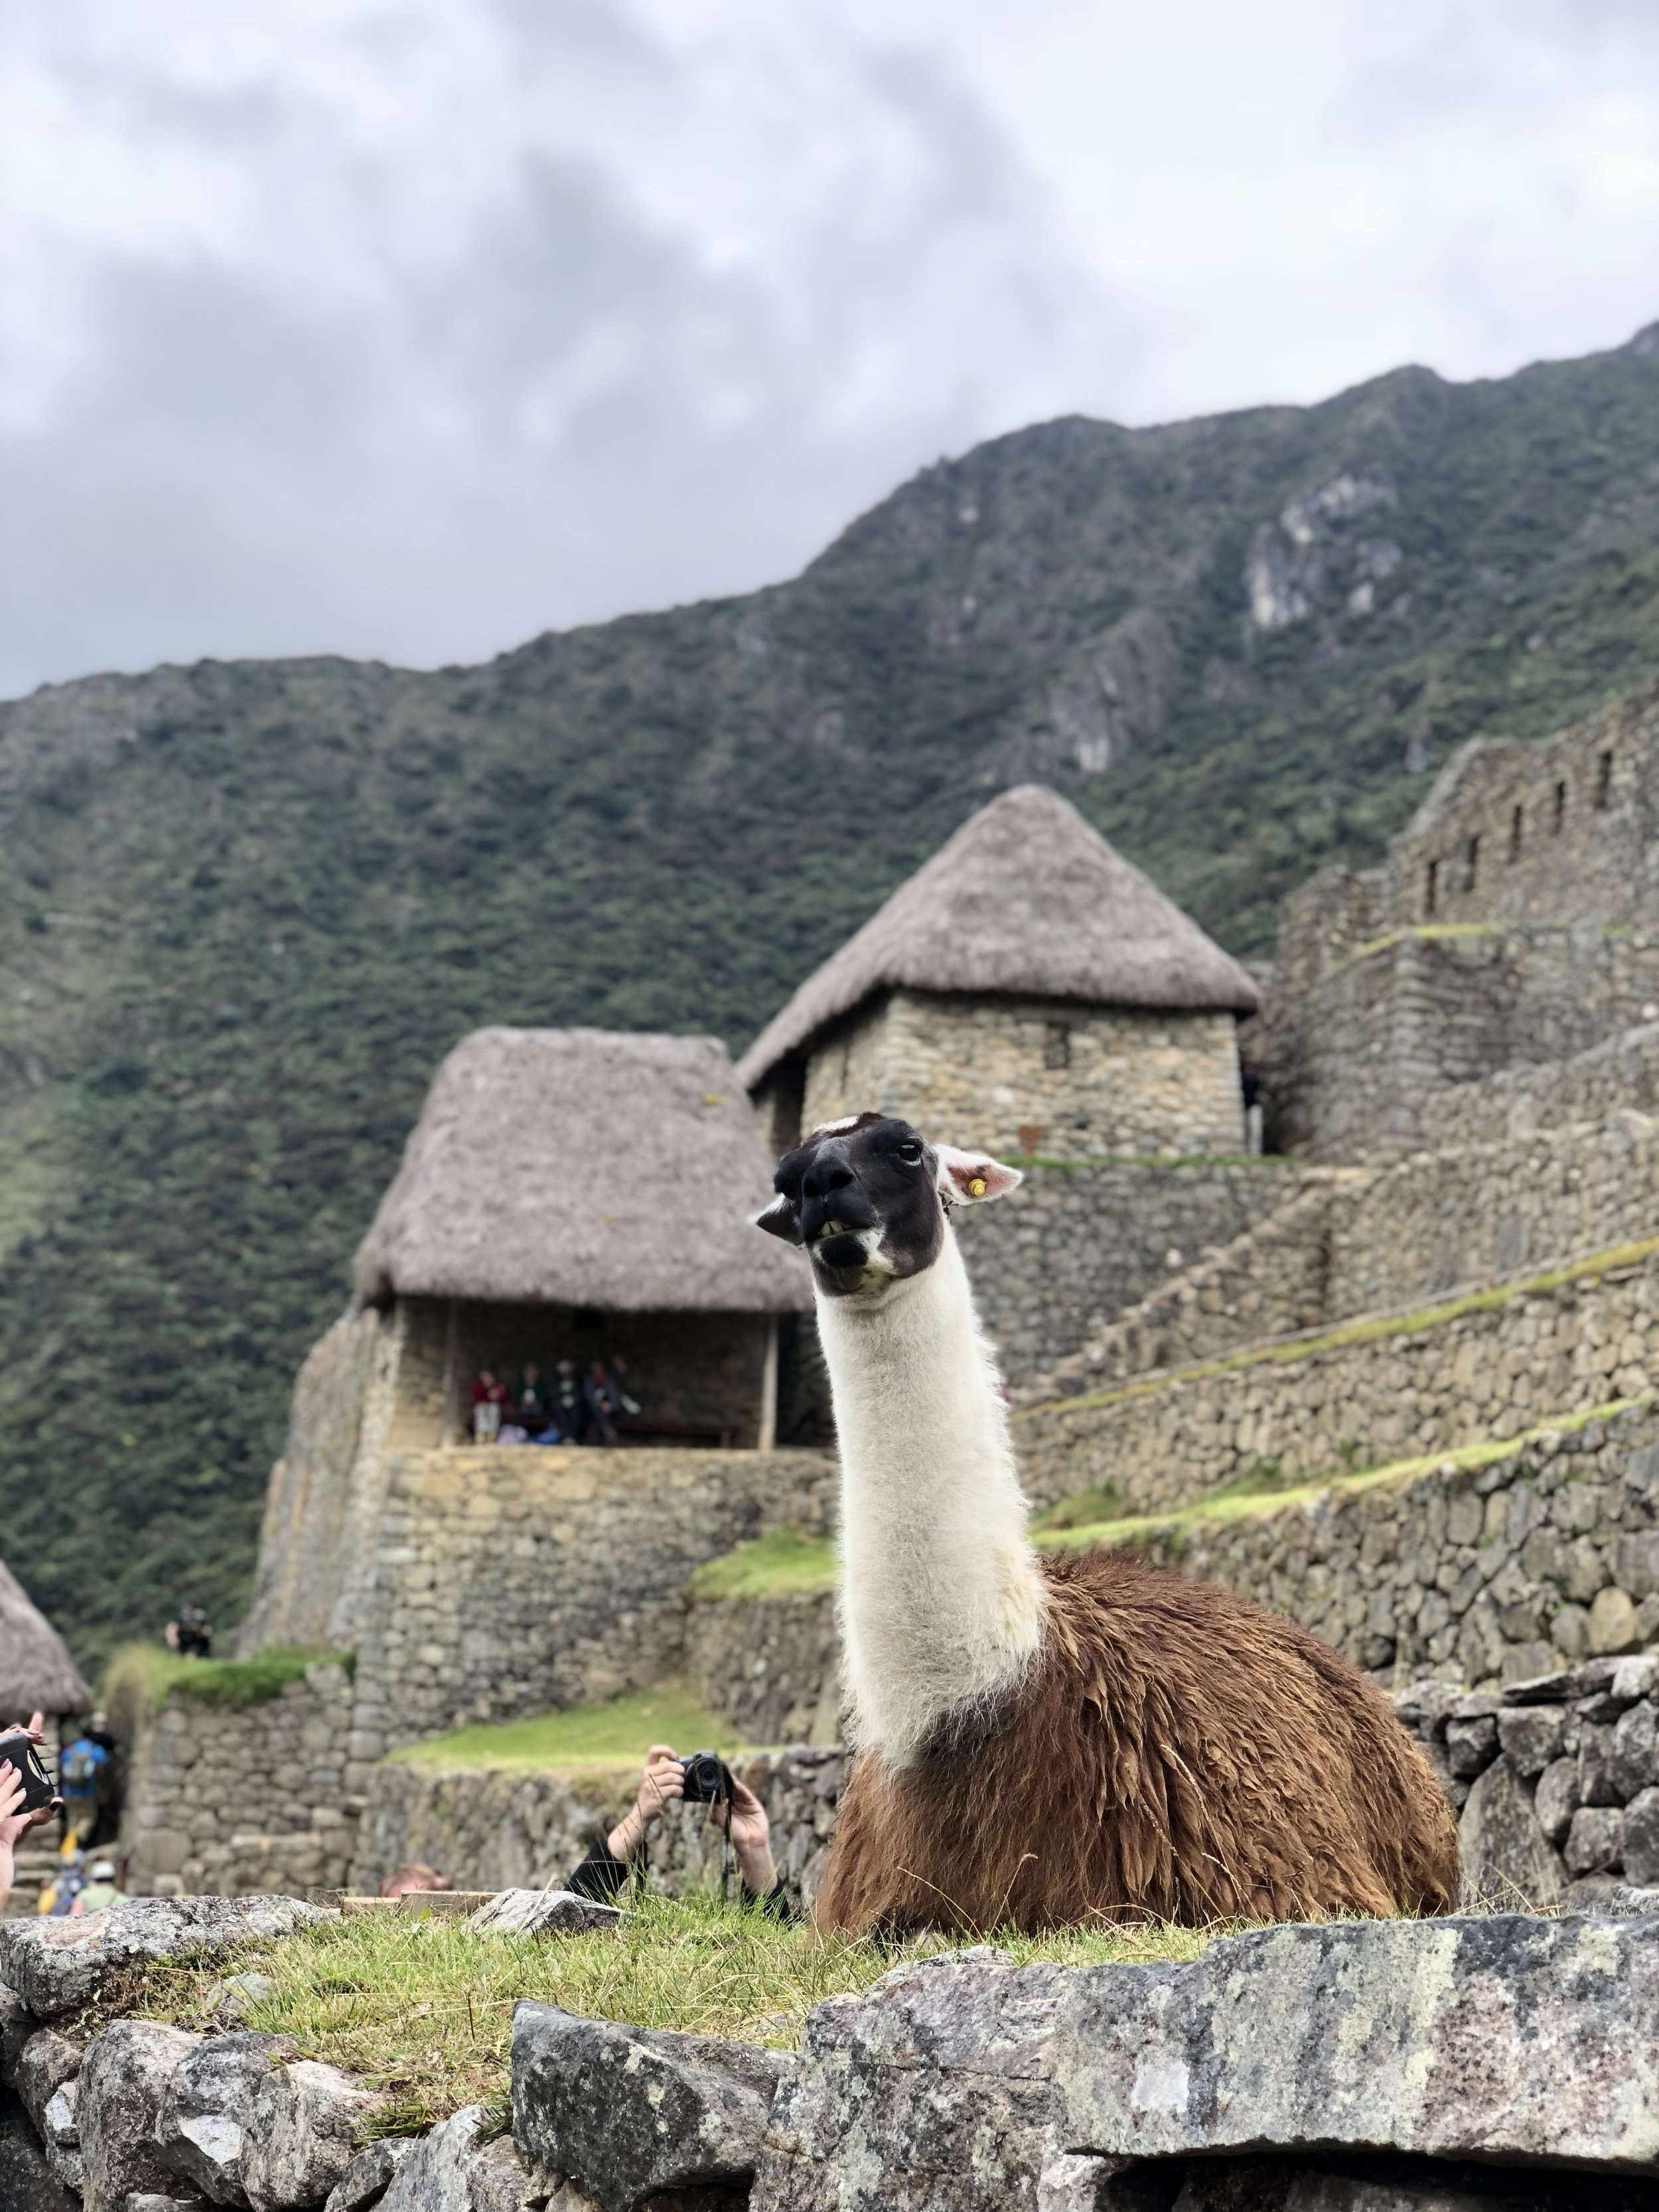 Precious llamas all around the Machu Picchu site!